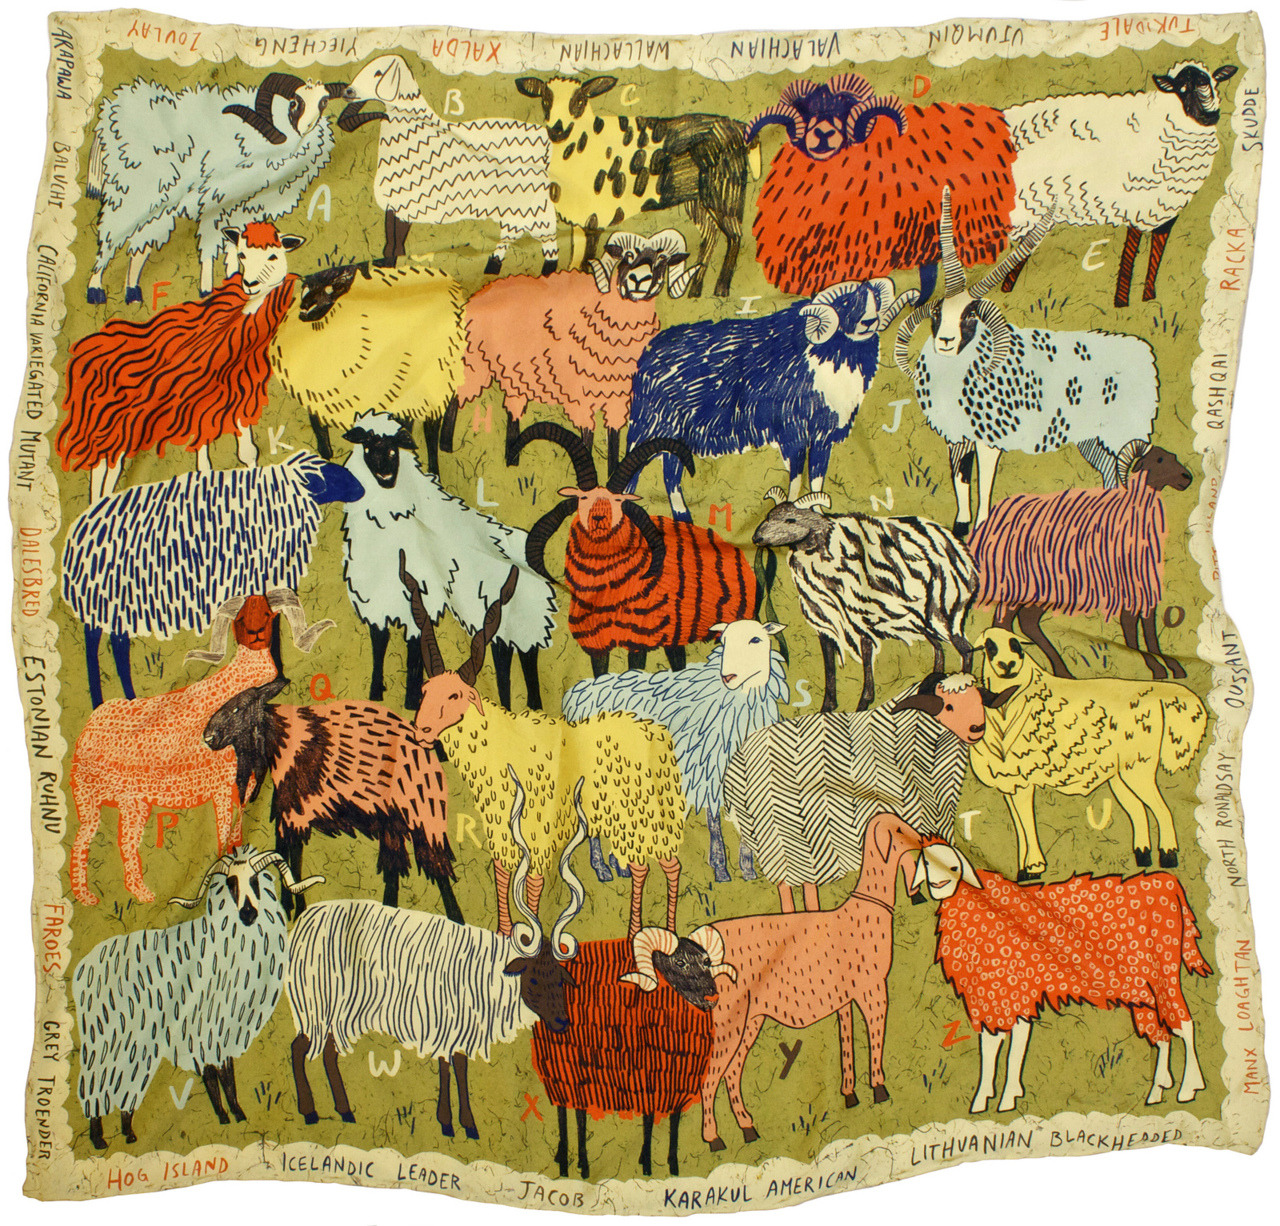 A-Z of Rare, Wool-production Sheep Breeds-part of a series of silk scarves as info-graphics